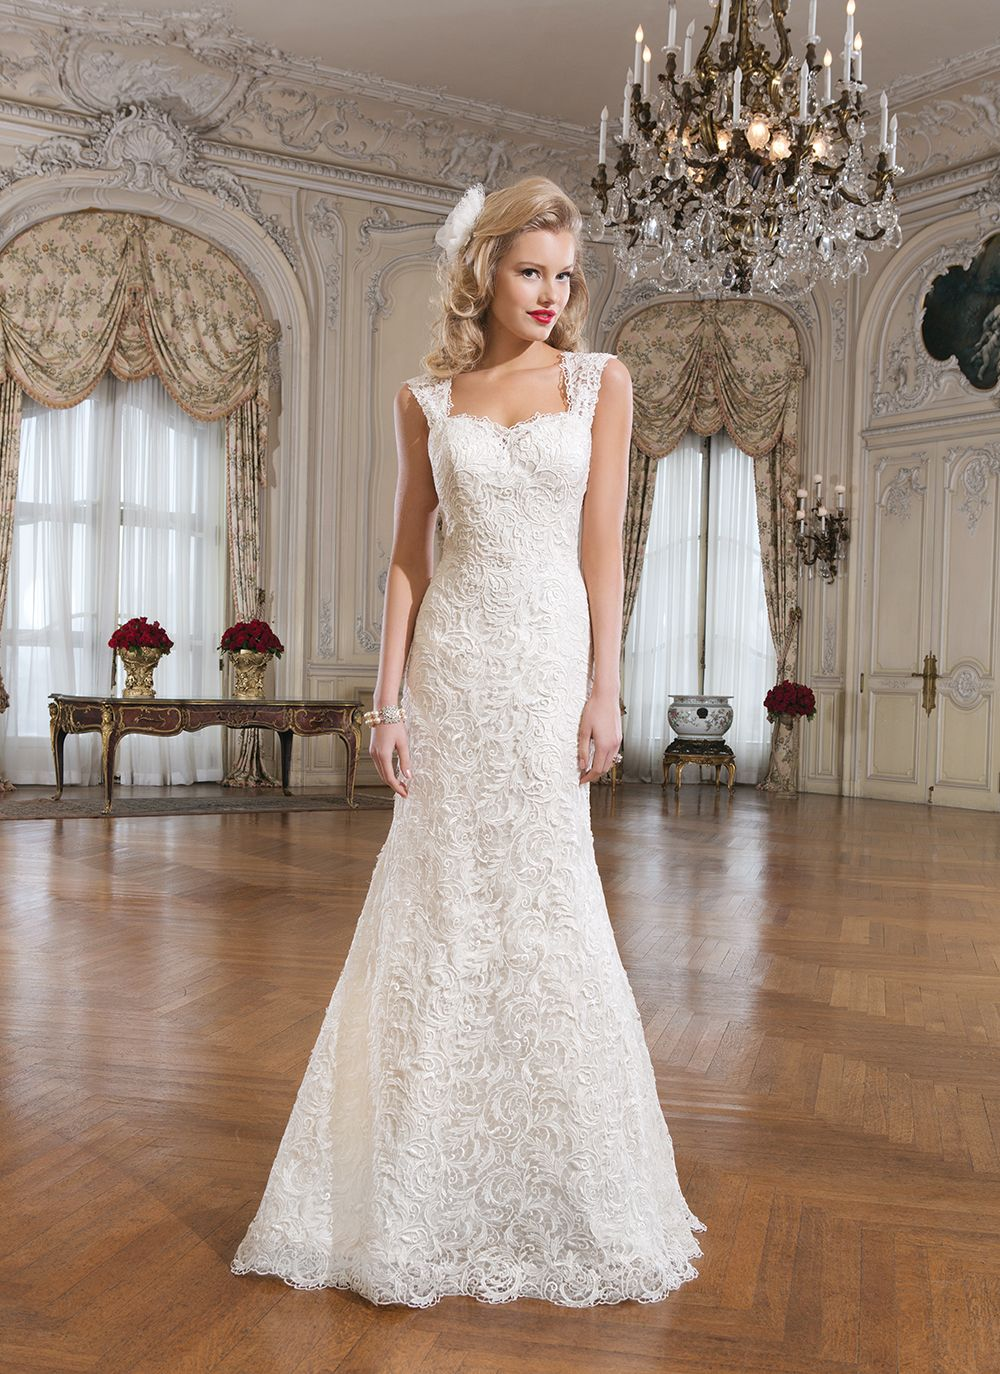 Lace fit and flare wedding dress with sleeves  Justin Alexander wedding dresses style  Venice lace fit and